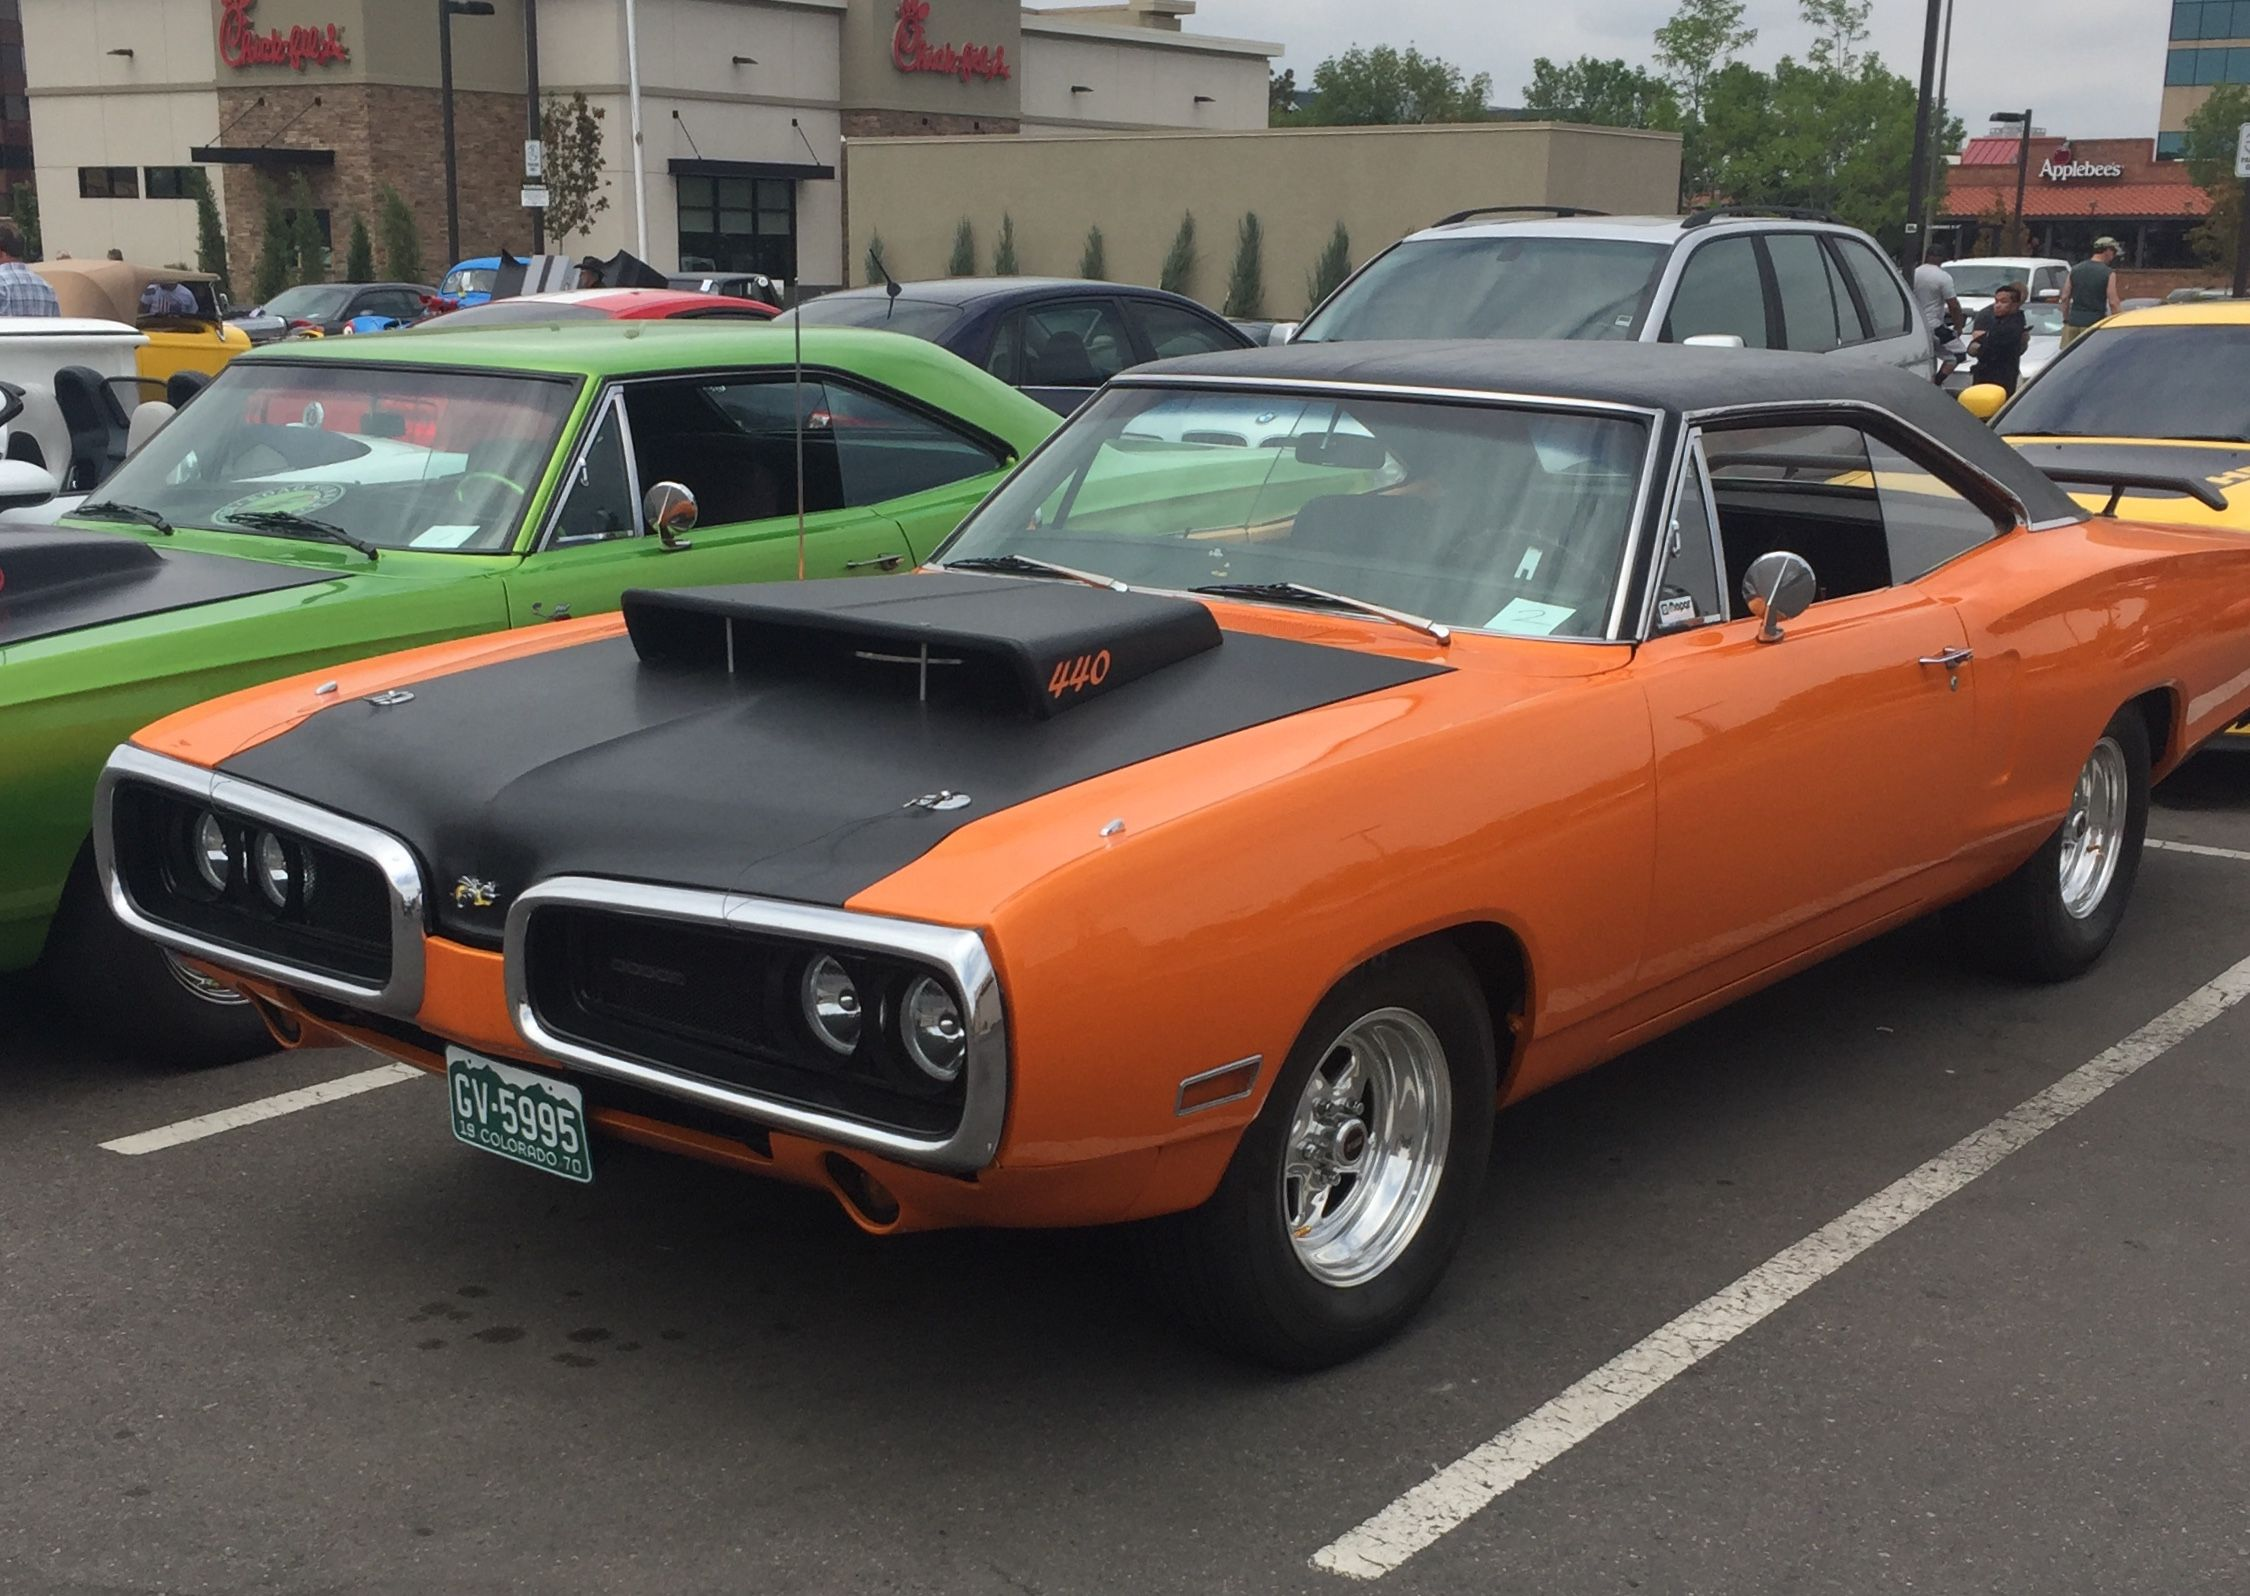 Dodge Super Bee Dodge Muscle Cars Mopar Muscle Cars Classic Cars Muscle